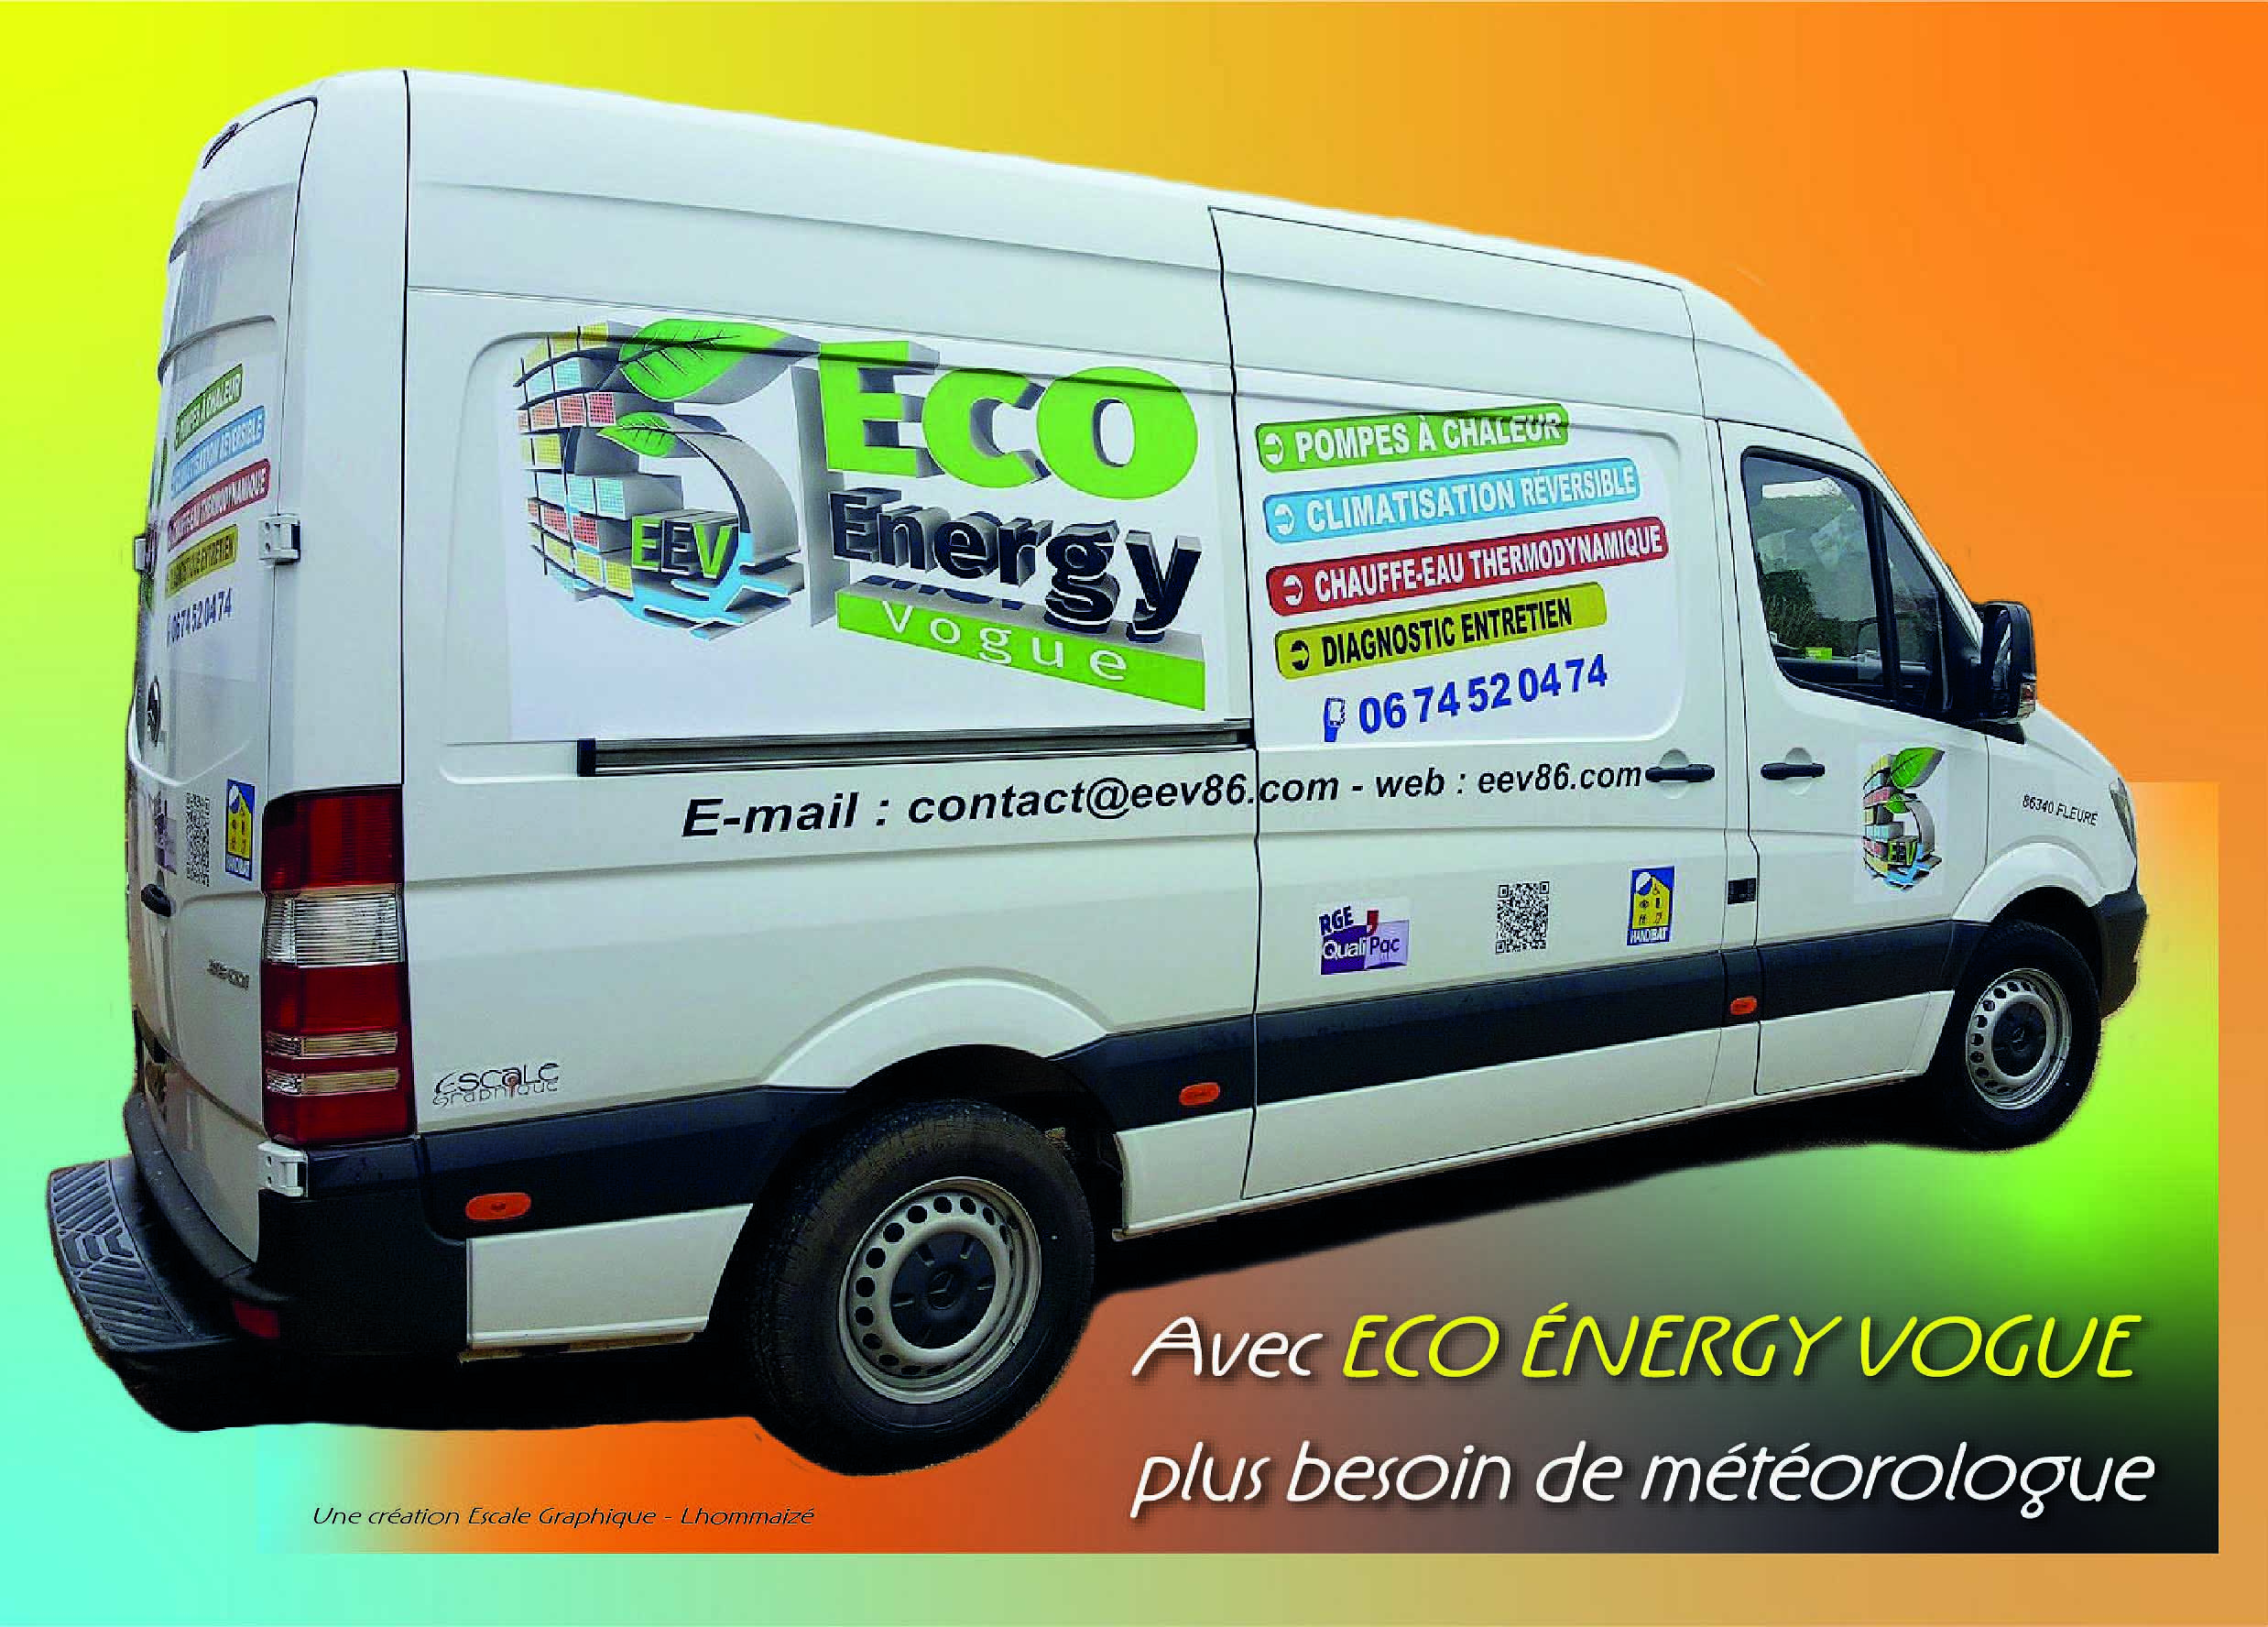 Eco EnergyVogue EEV86